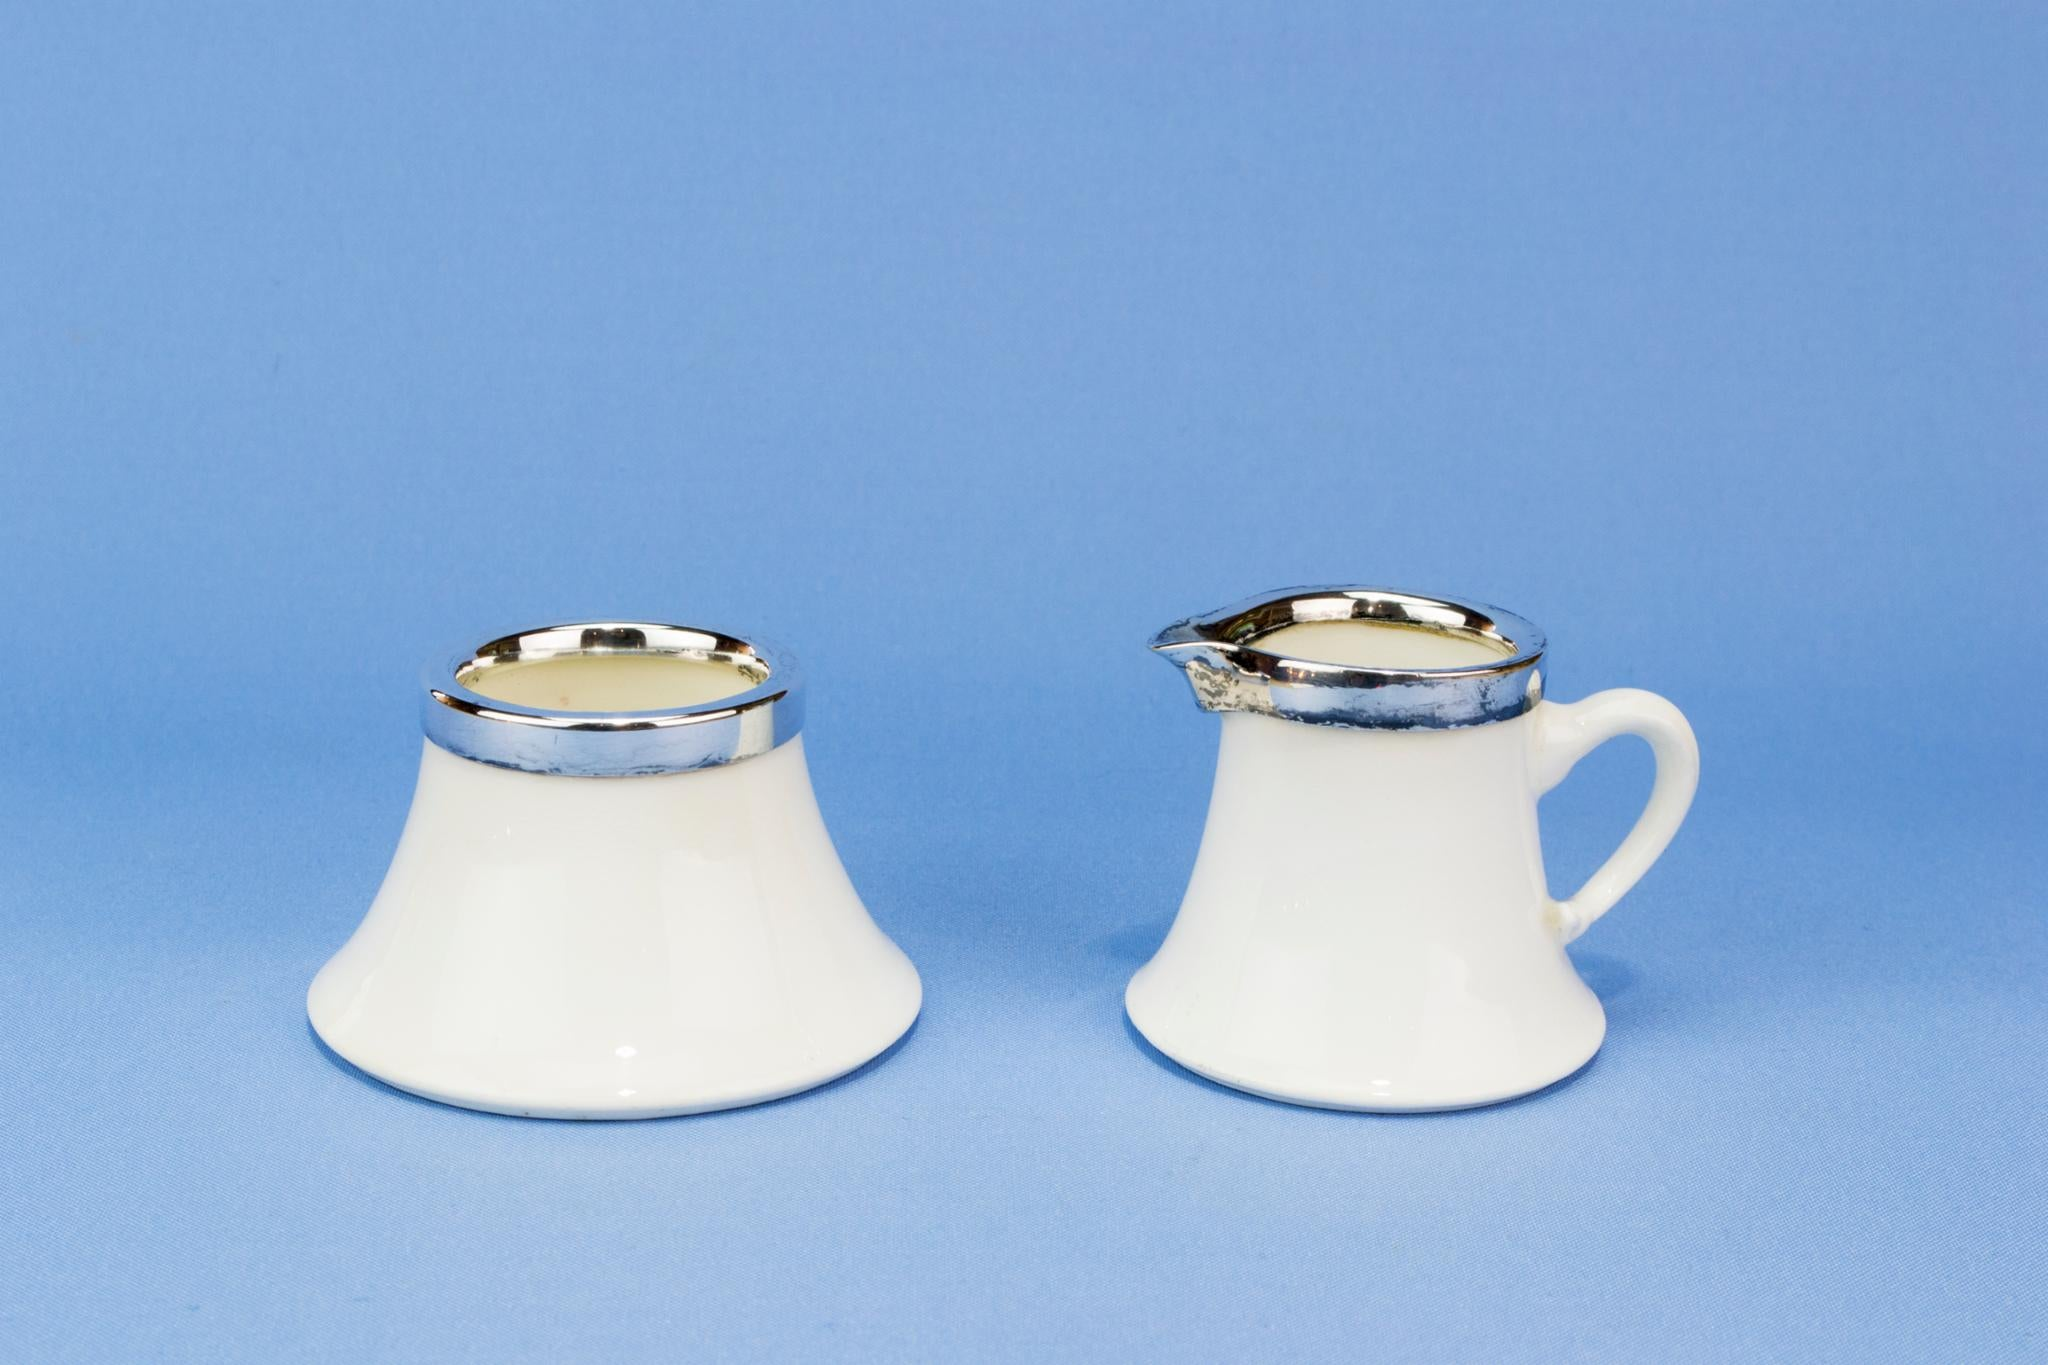 Coalport milk and sugar set, English circa 1900